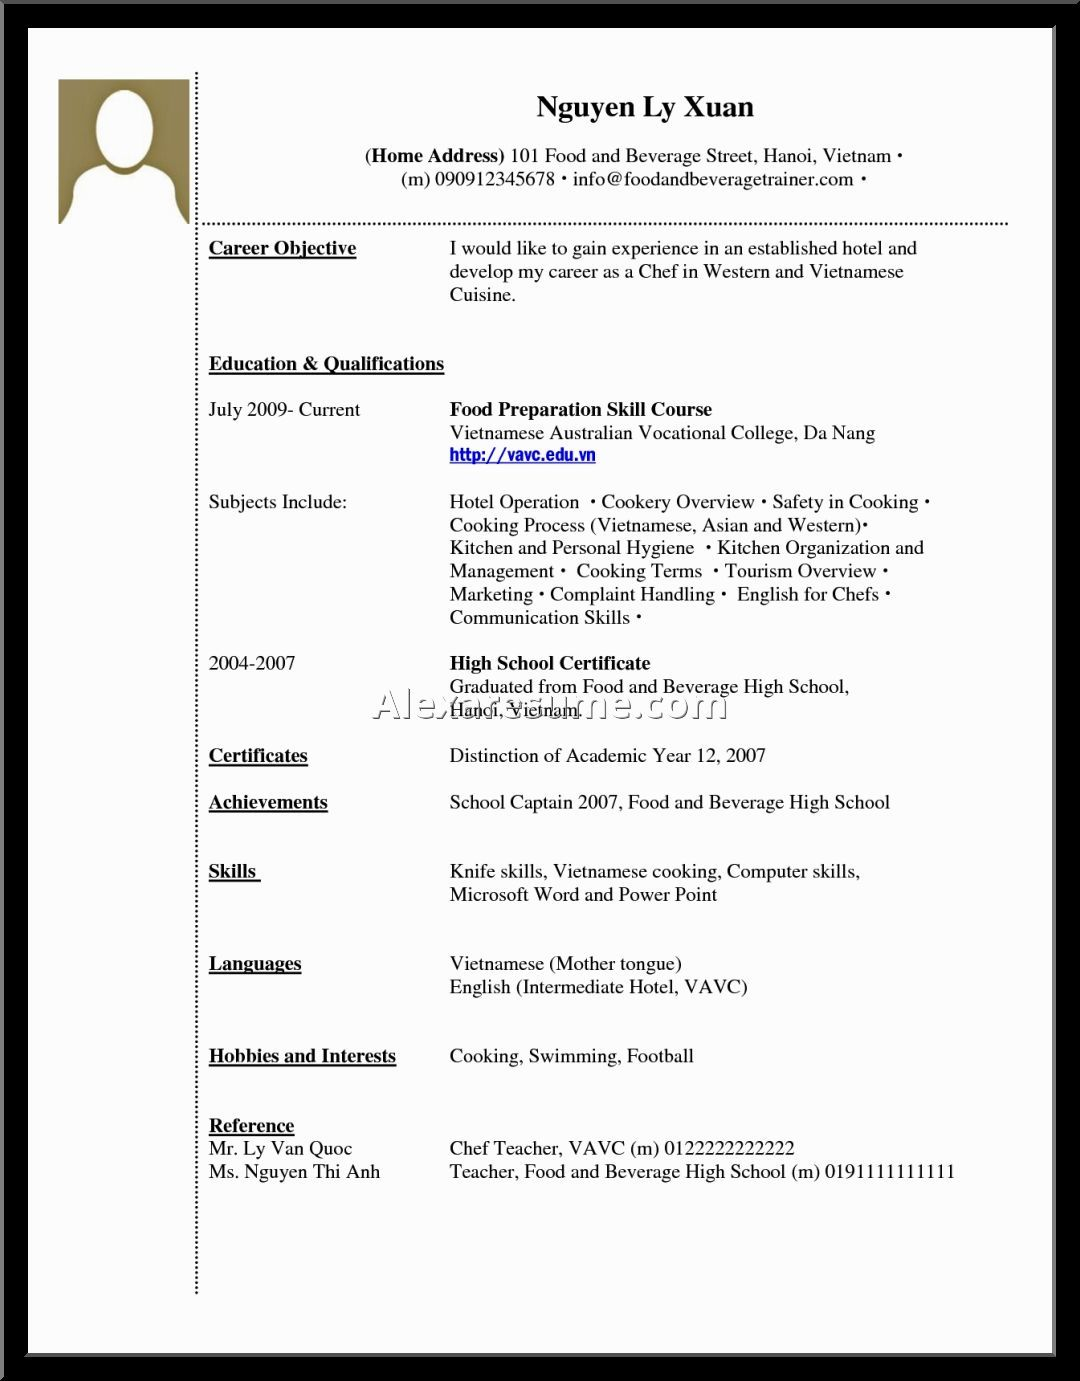 Resume For College Student With No Work Experience Sample Resume High School Grad Experience Cover Letter For College